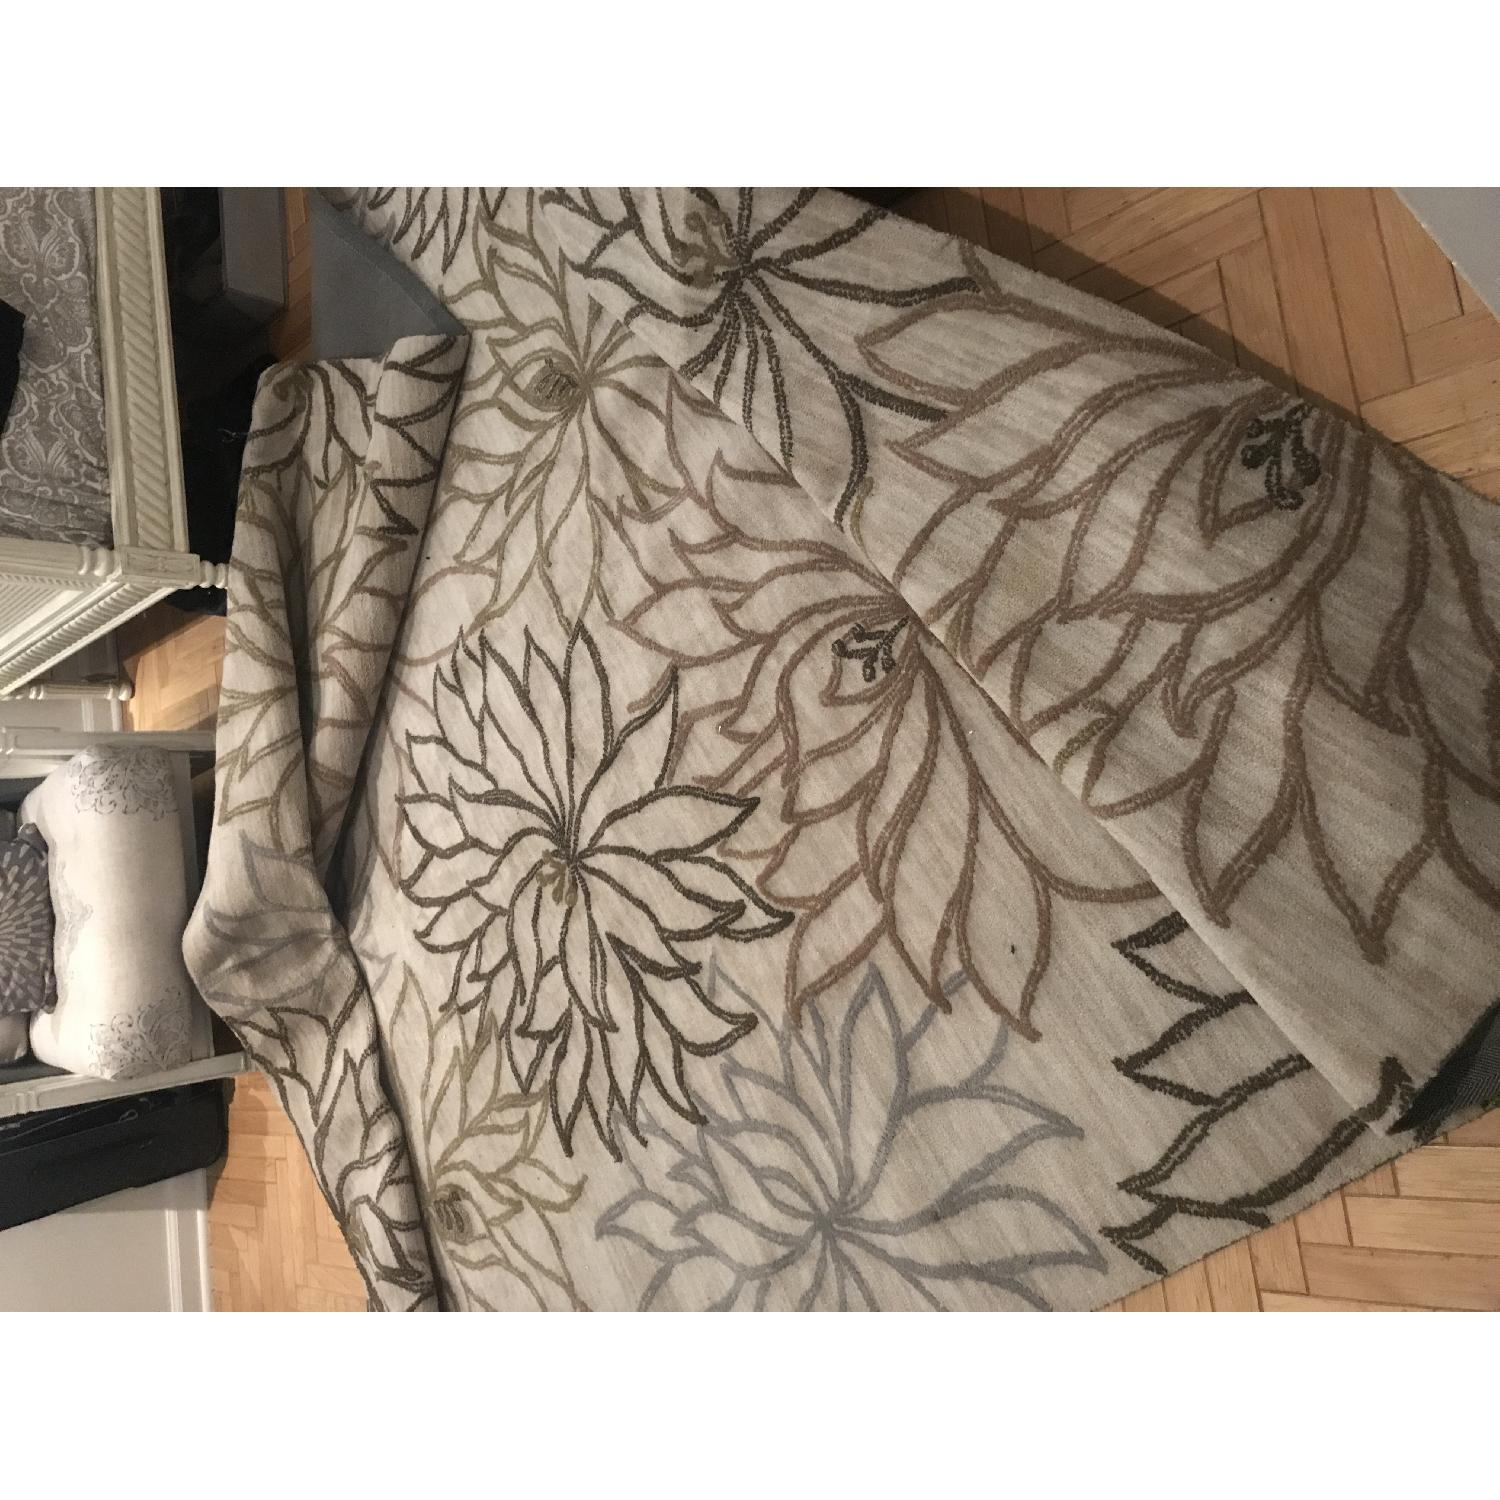 Surya Neutral Gray Area Rug w/ Floral Design - image-1